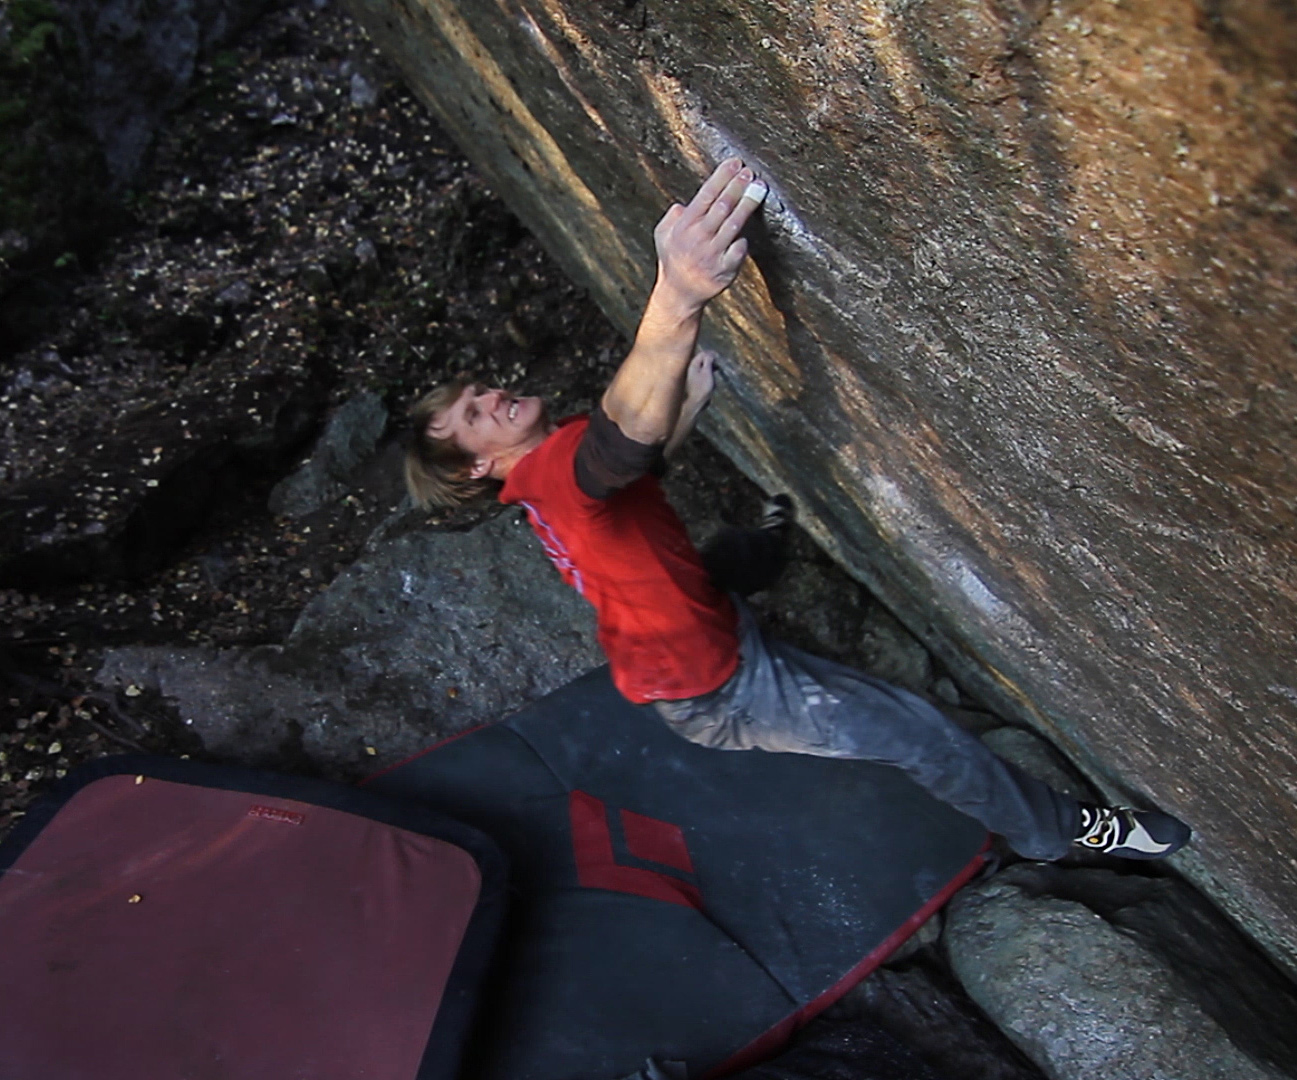 Nalle Hukkataival climbing hard boulder, the Lappnor project